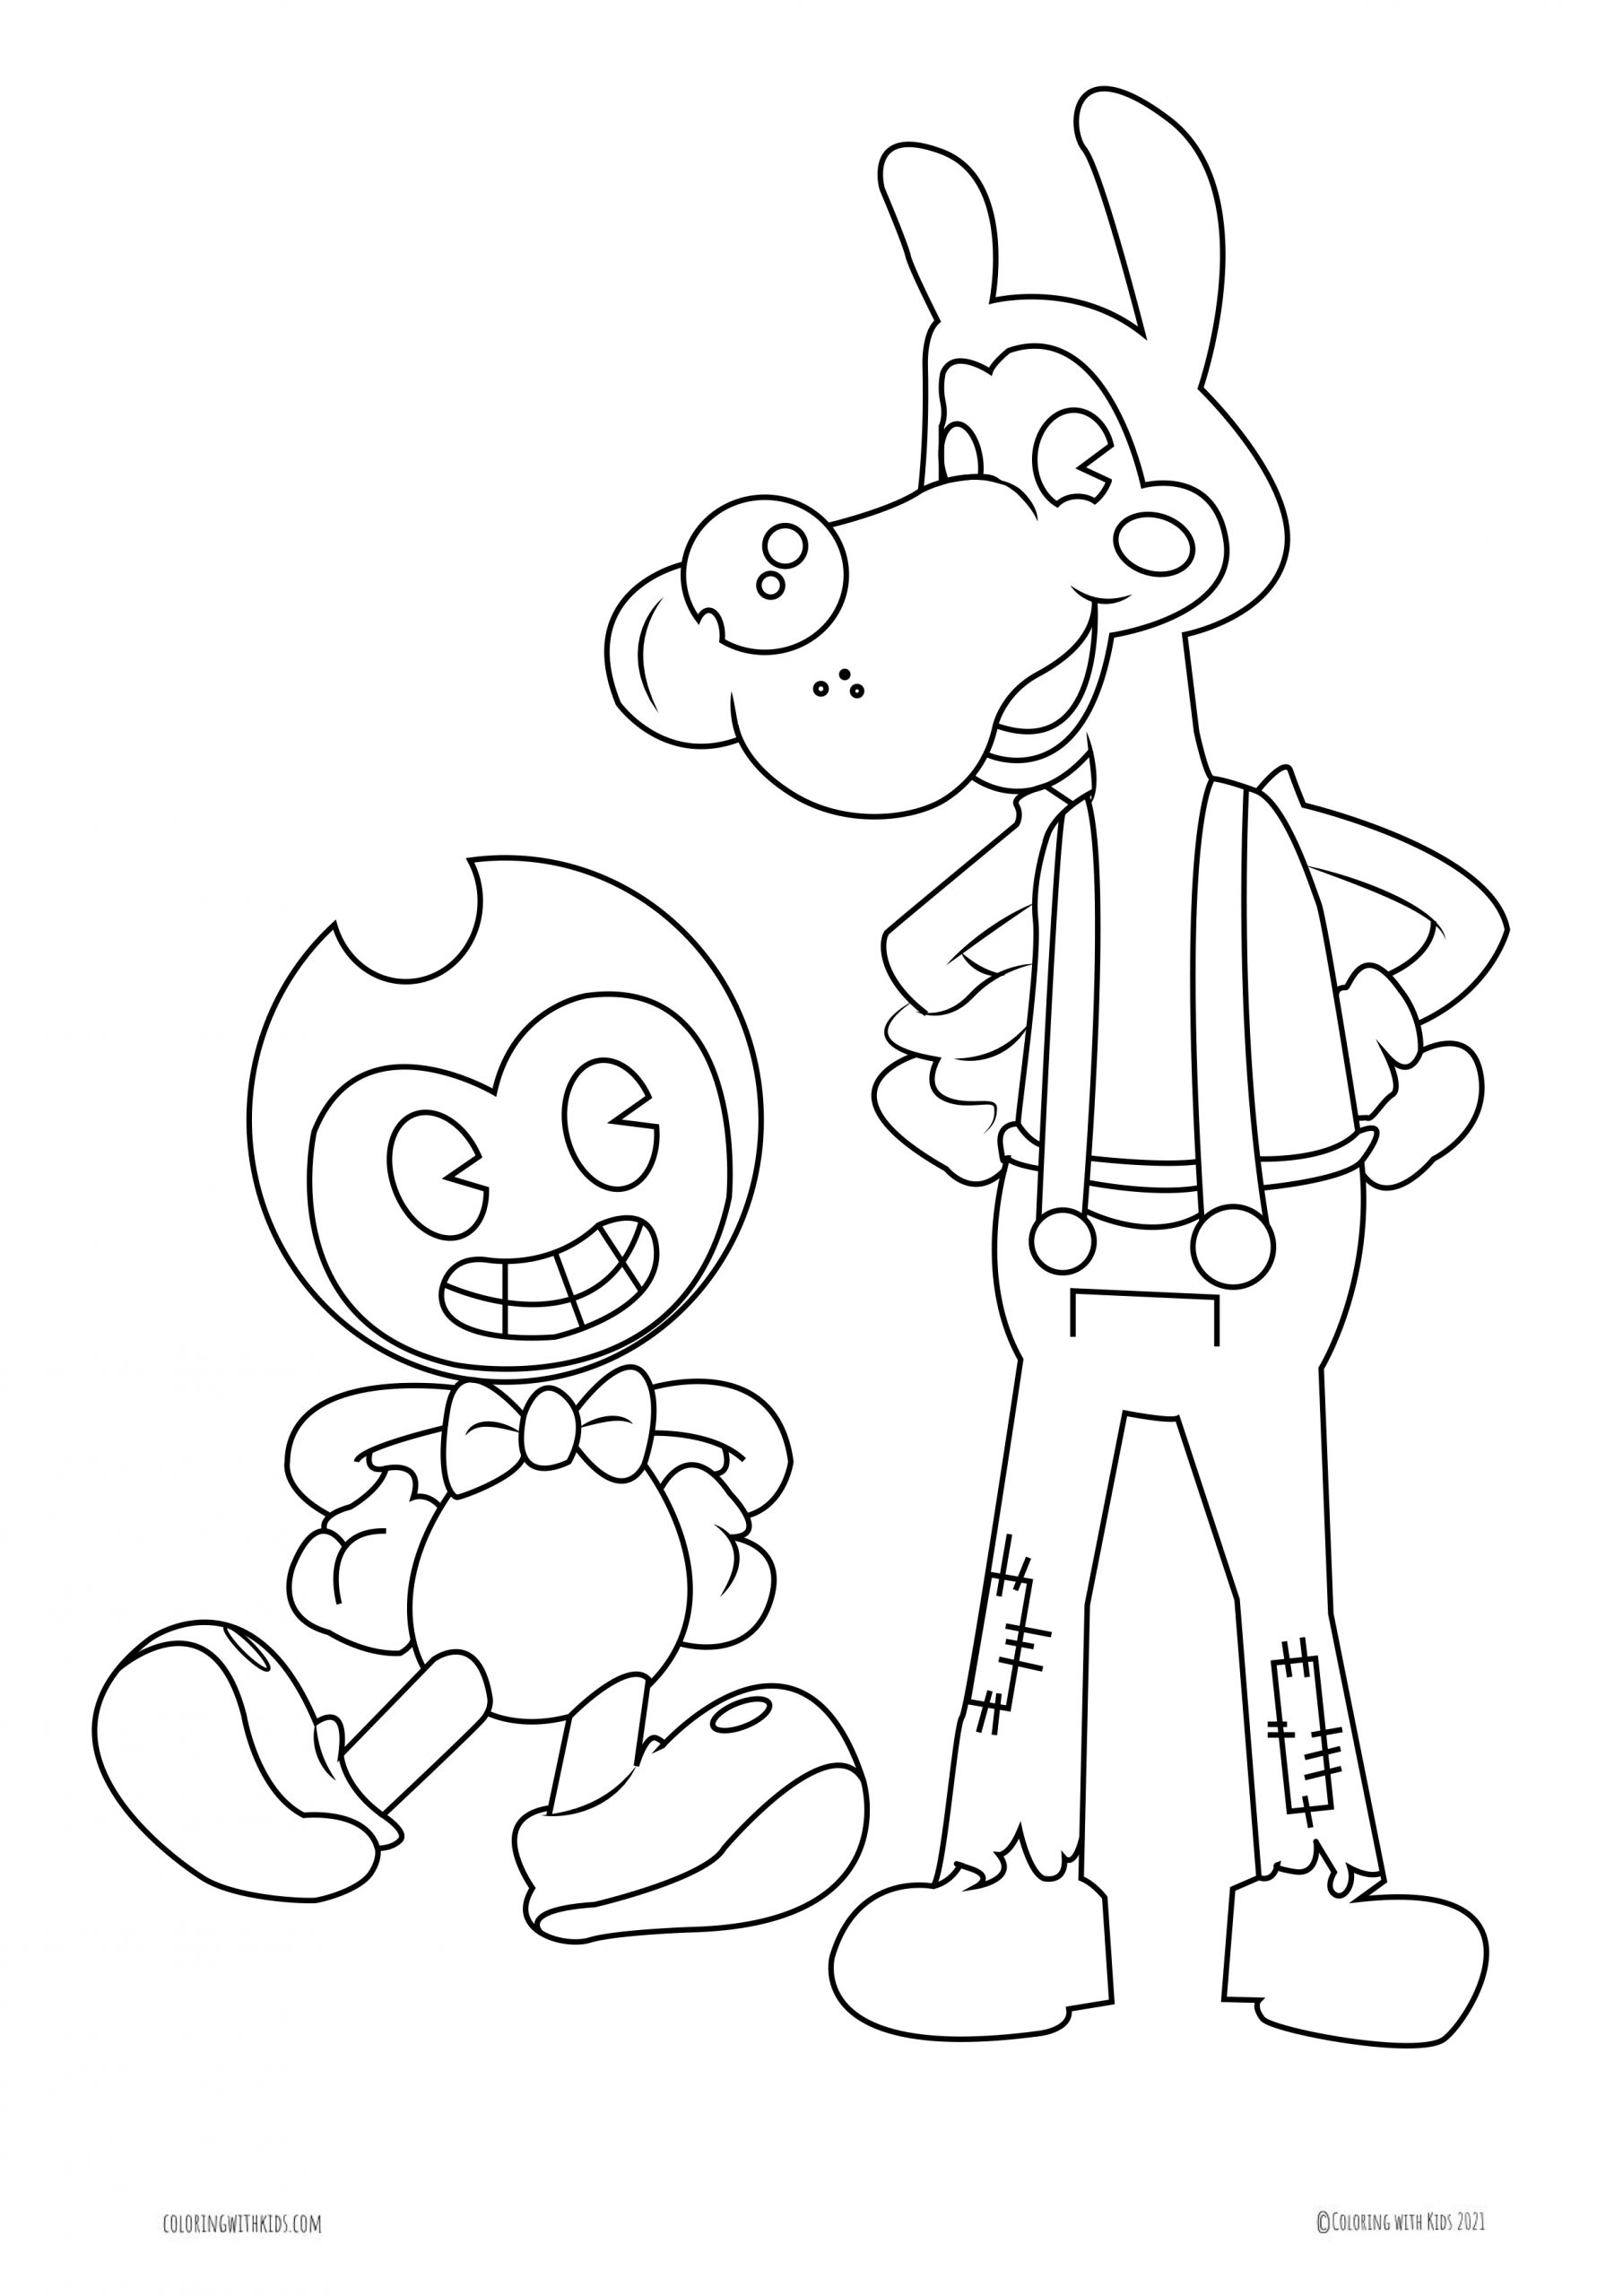 Coloring Page Of Boris The Wolf And Bendy   Coloring with Kids